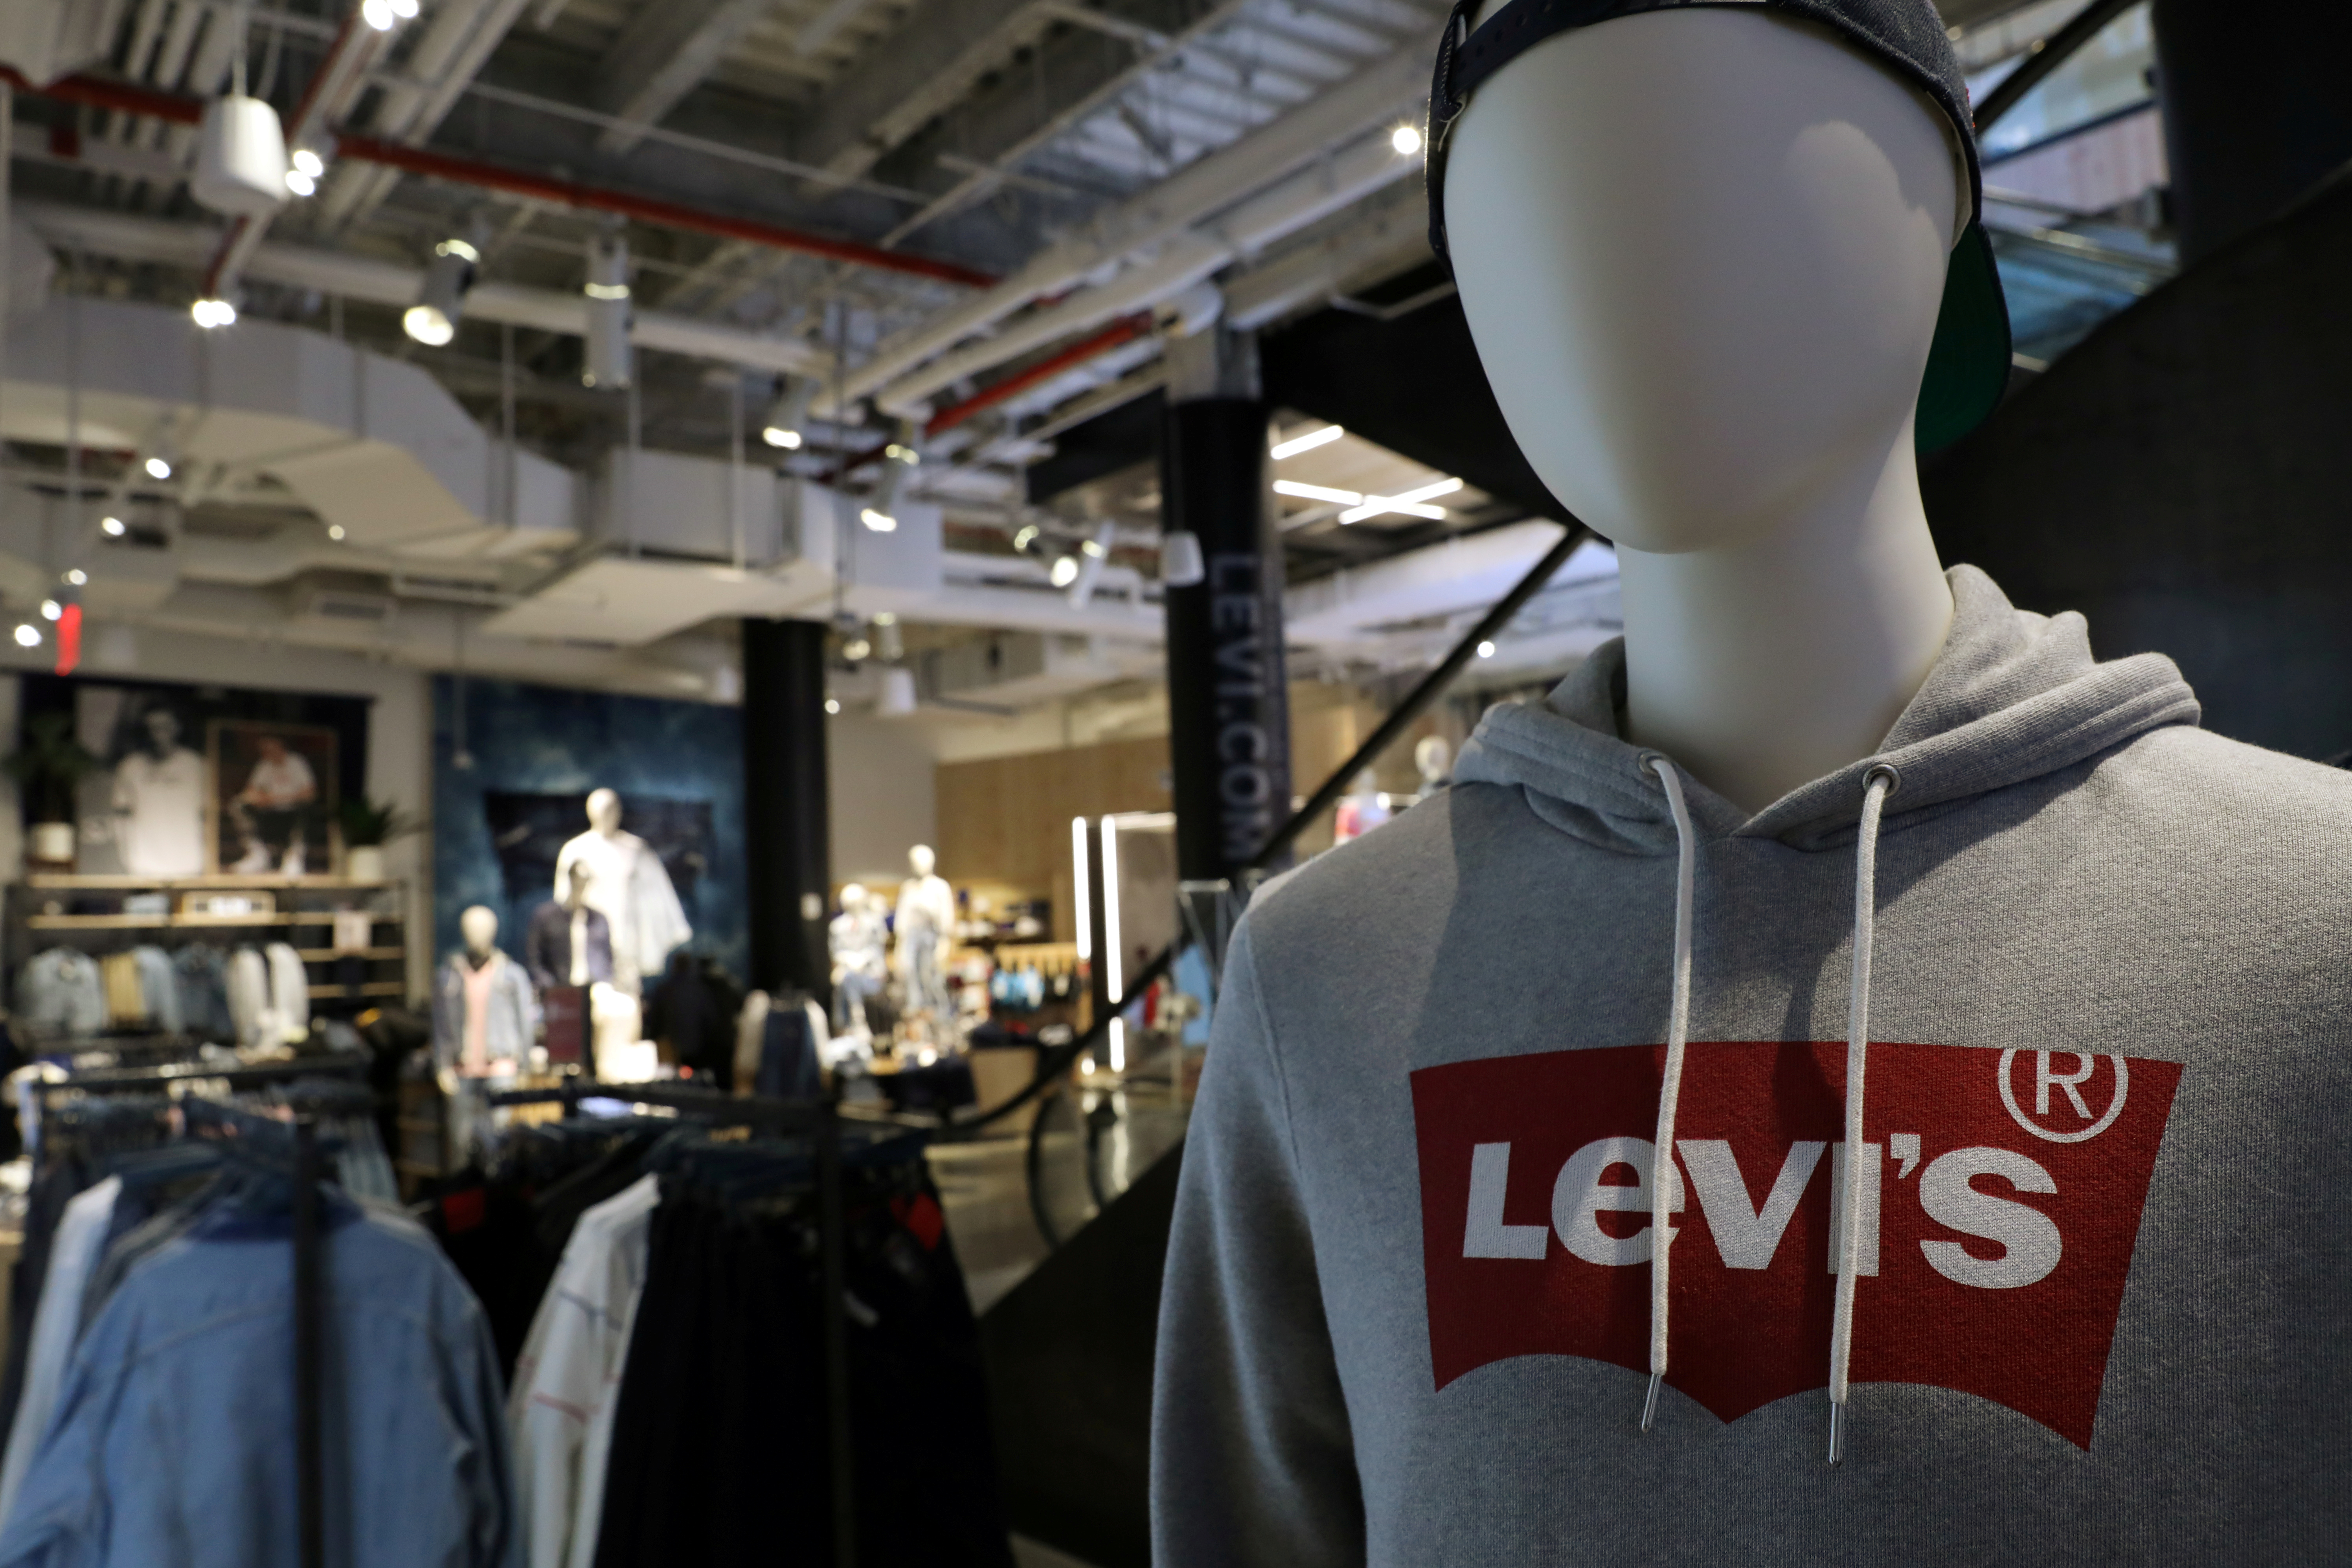 The Levi's logo is seen on a shirt in a Levi Strauss store in New York City, U.S., March 19, 2019. REUTERS/Brendan McDermid/Files